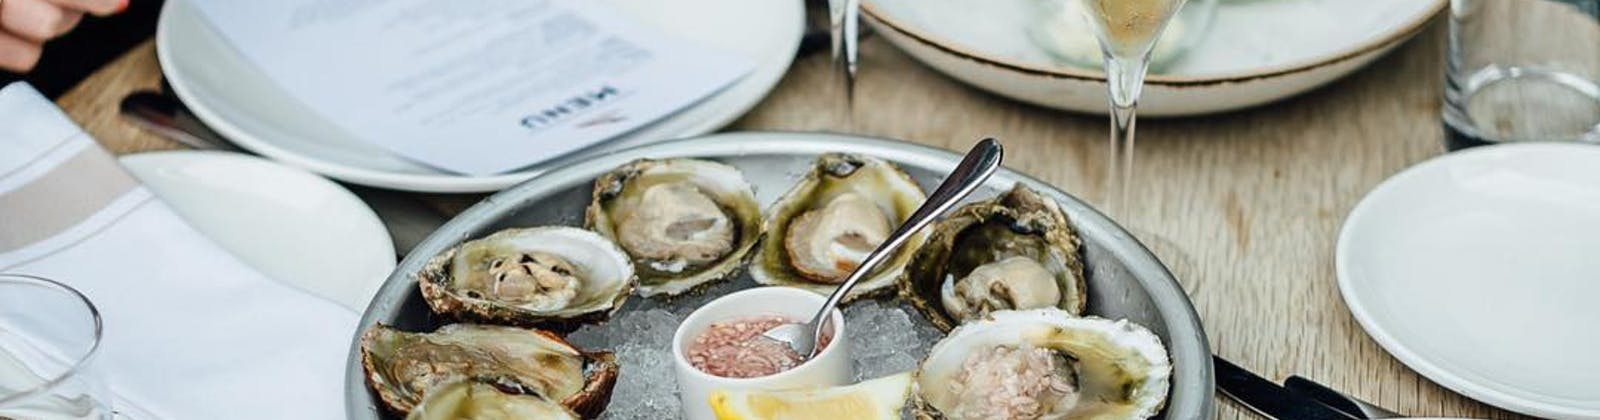 Bluff oysters from Regatta bar and eatery